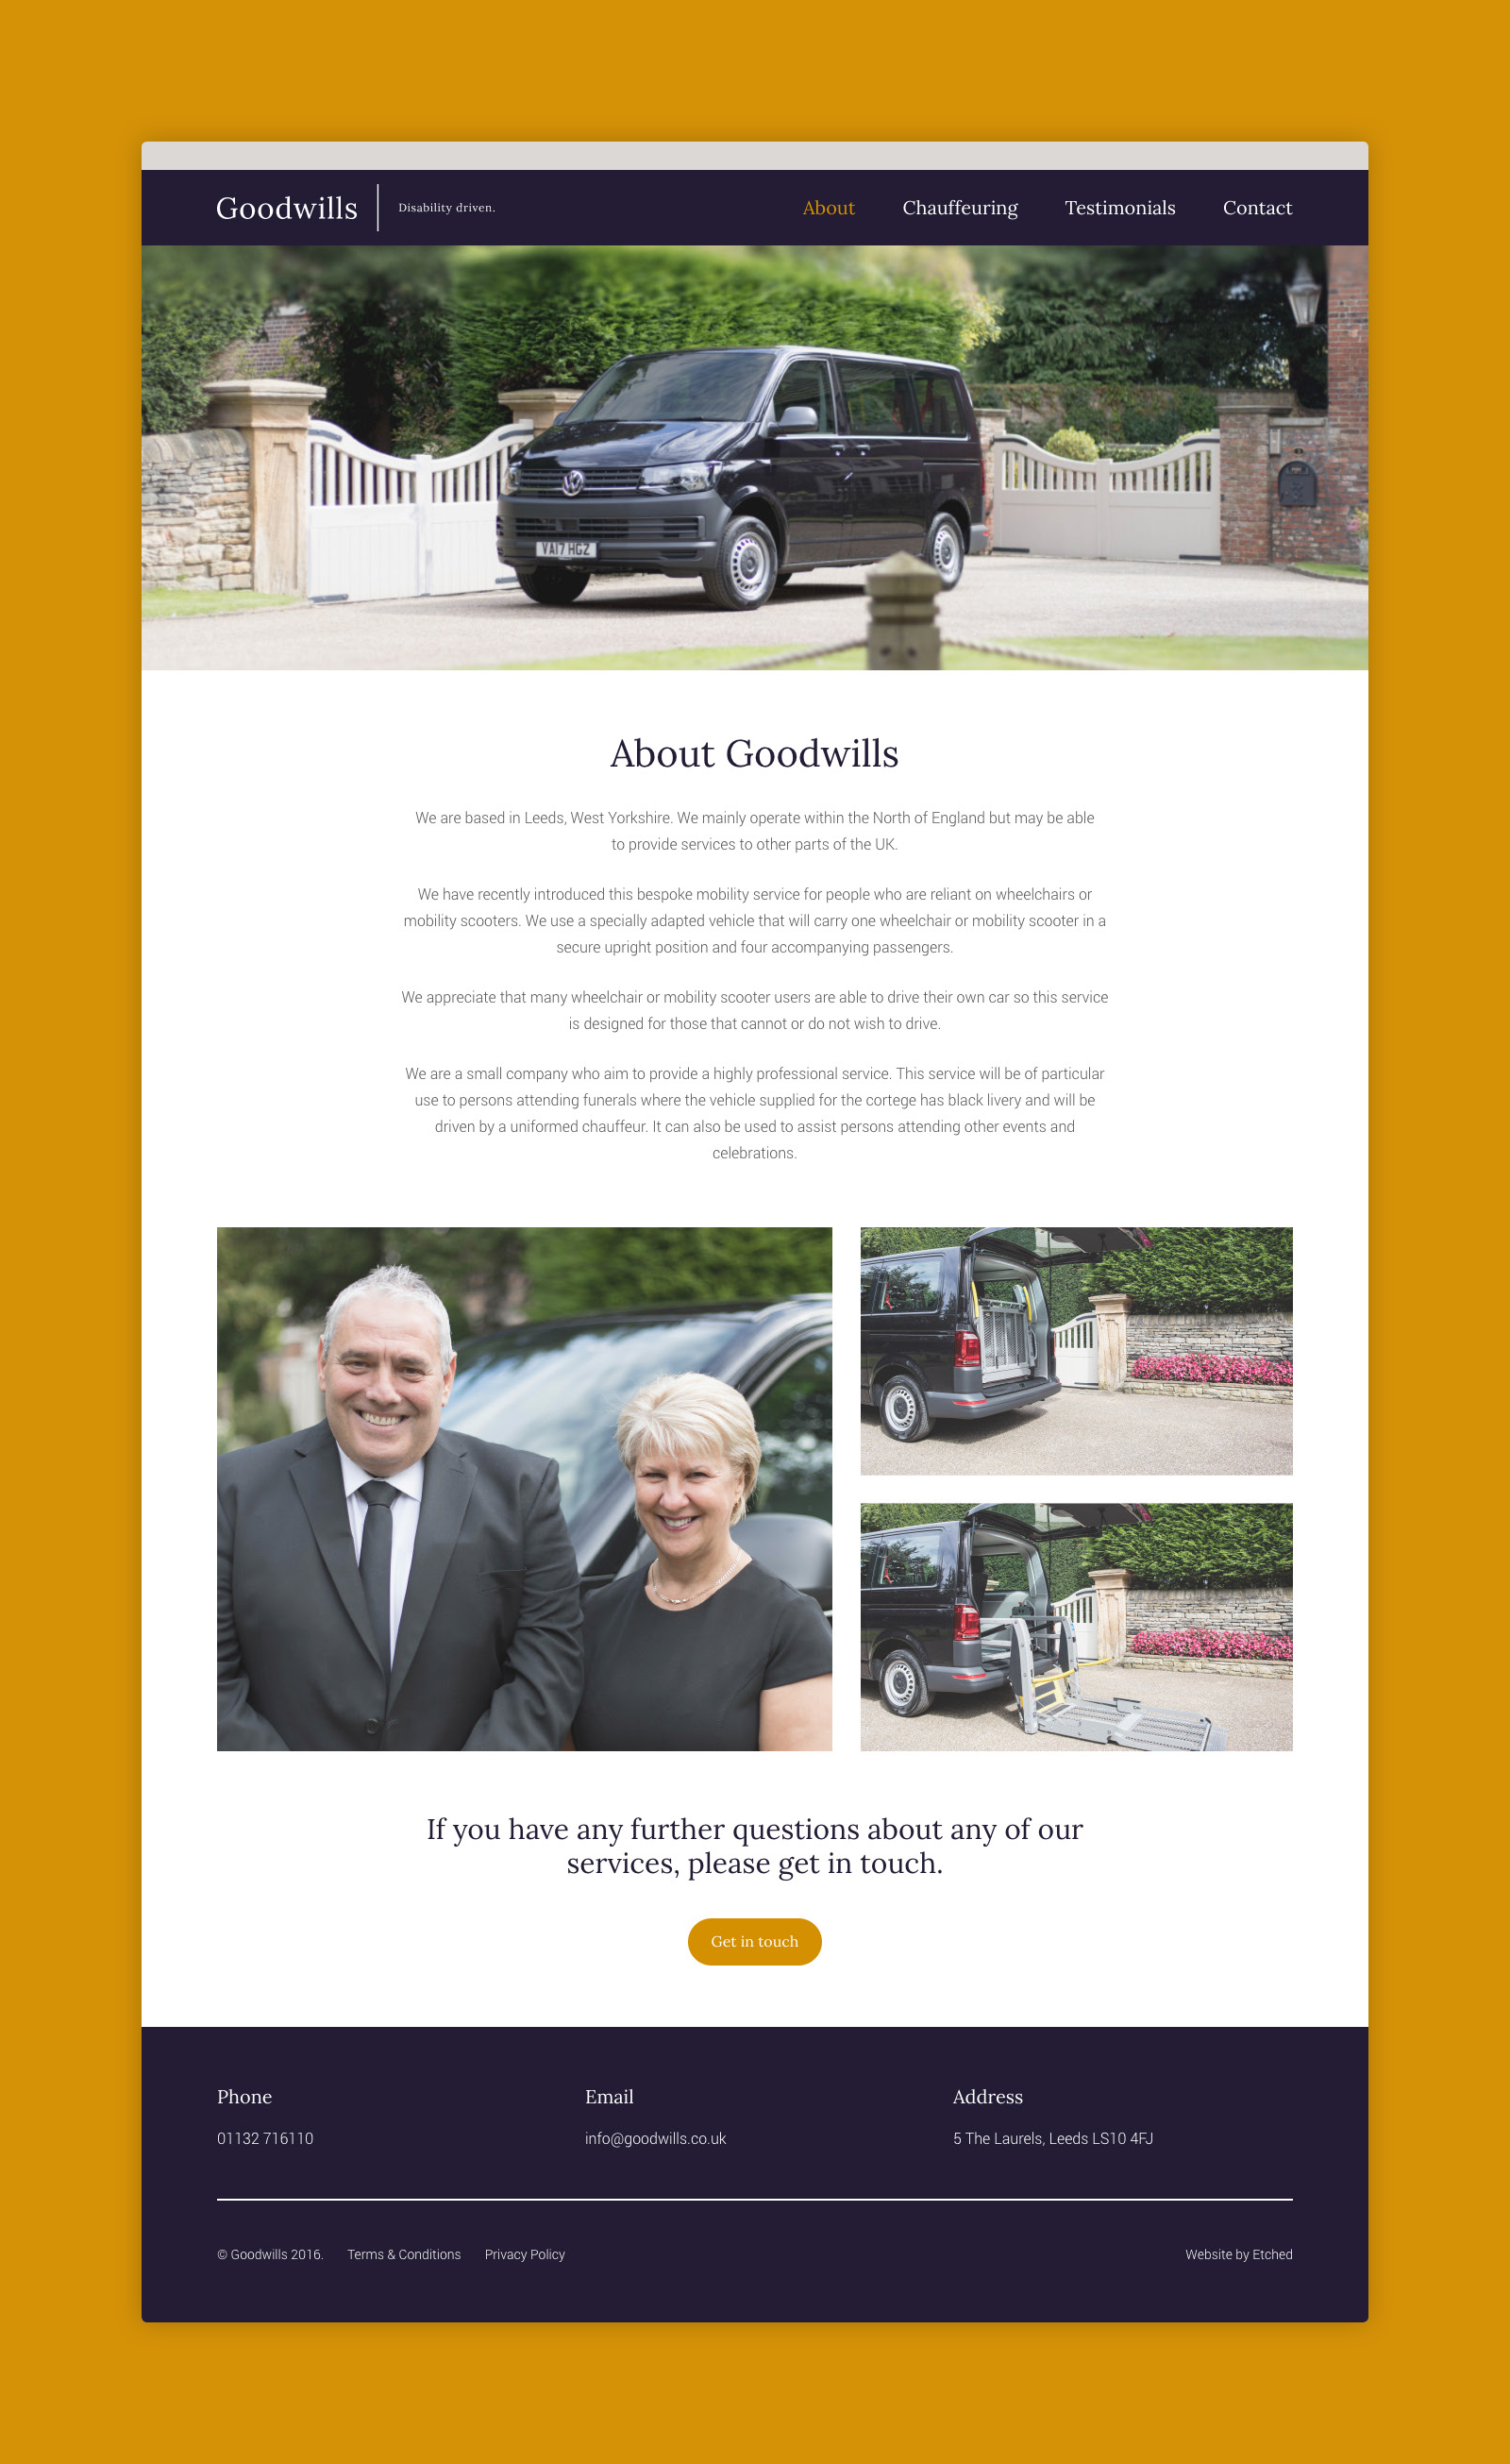 Goodwills Website Design